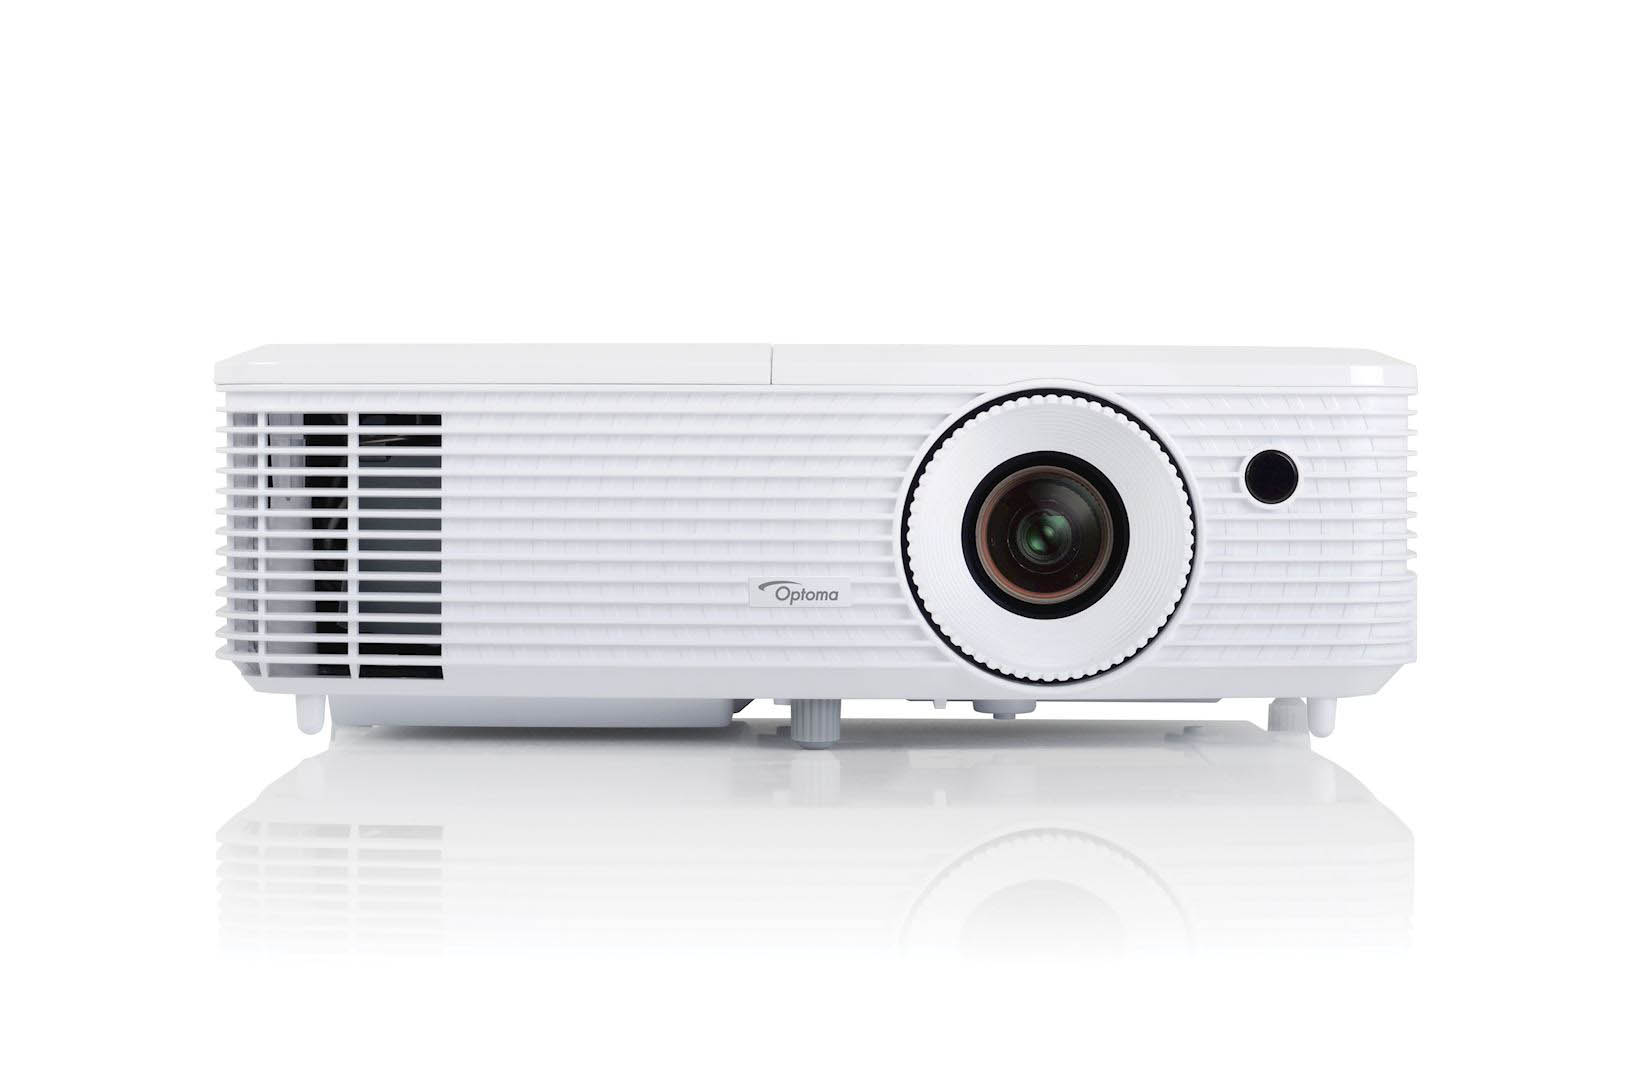 Optoma Hd29darbee 1080p Hd Home Theater Dlp Projector